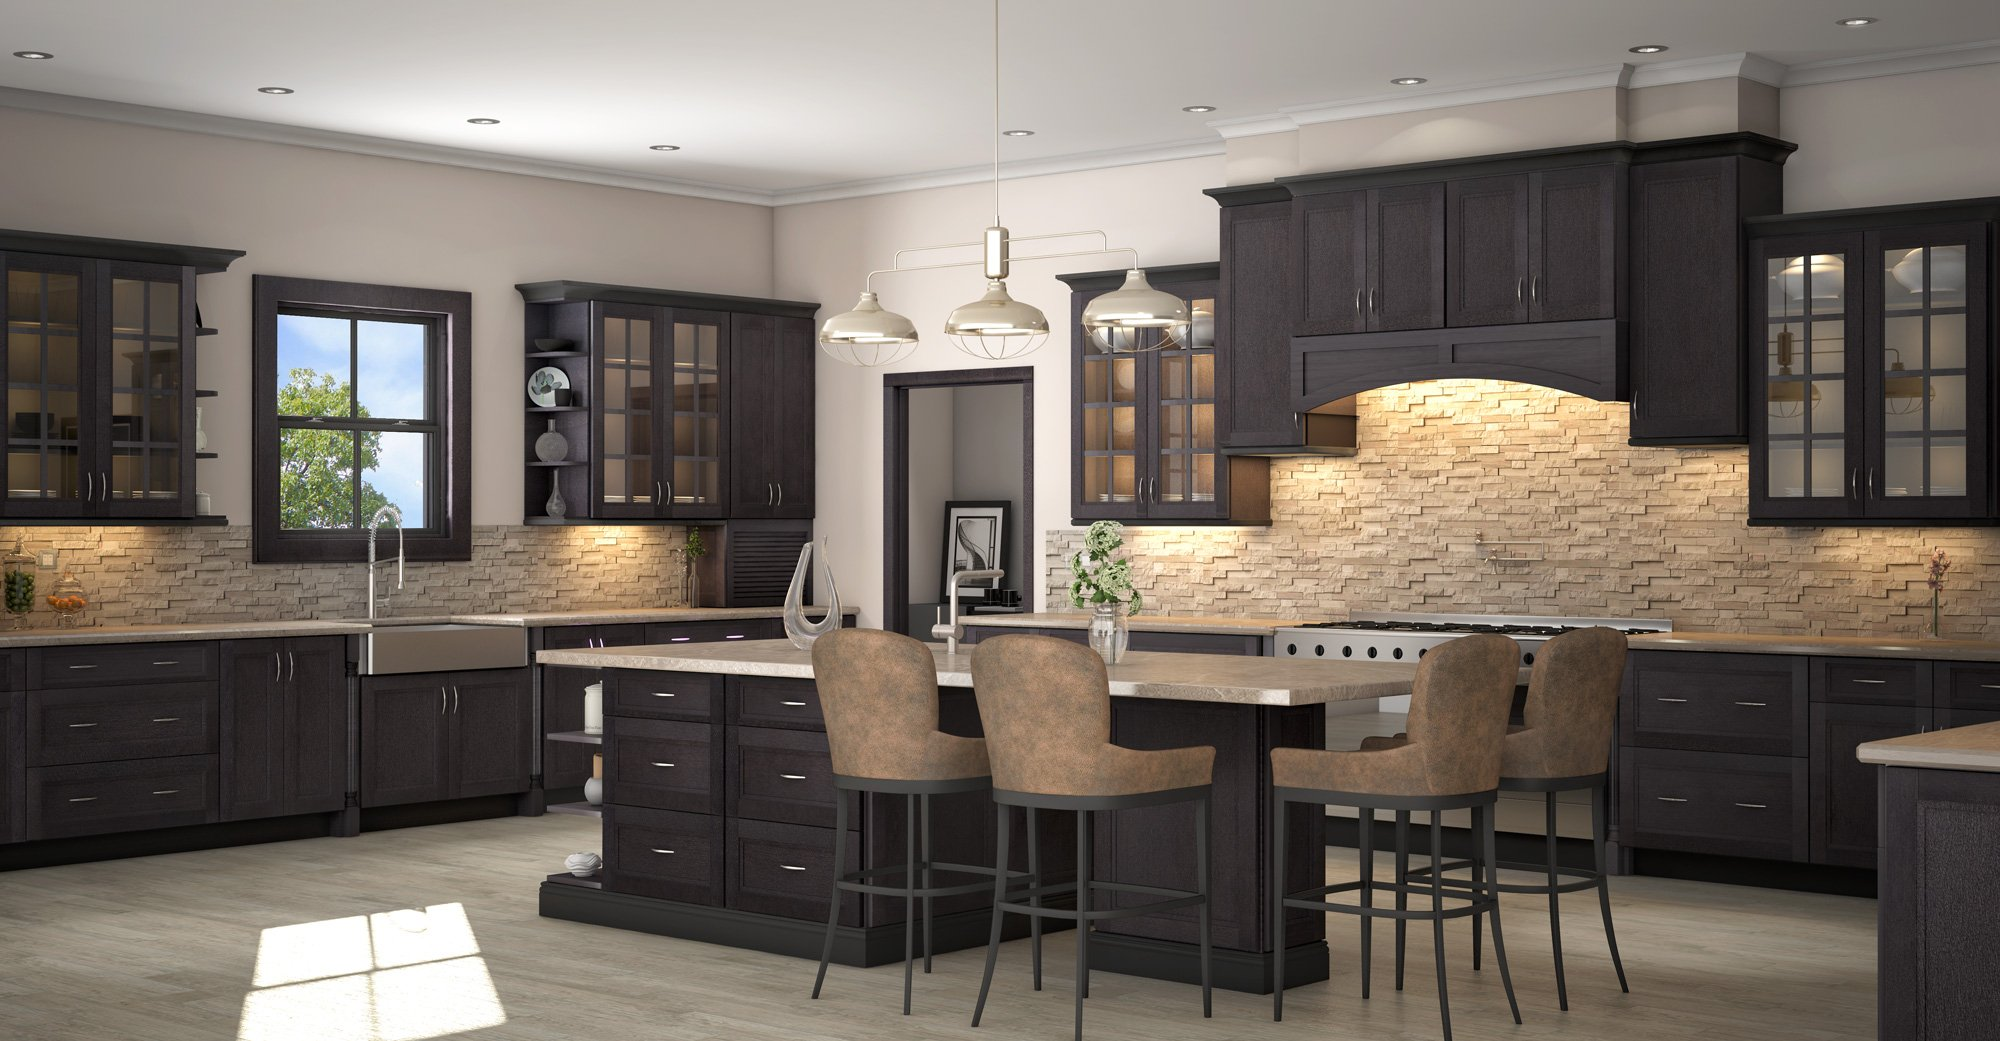 Kitchens With Grey Cabinets And Black Countertops